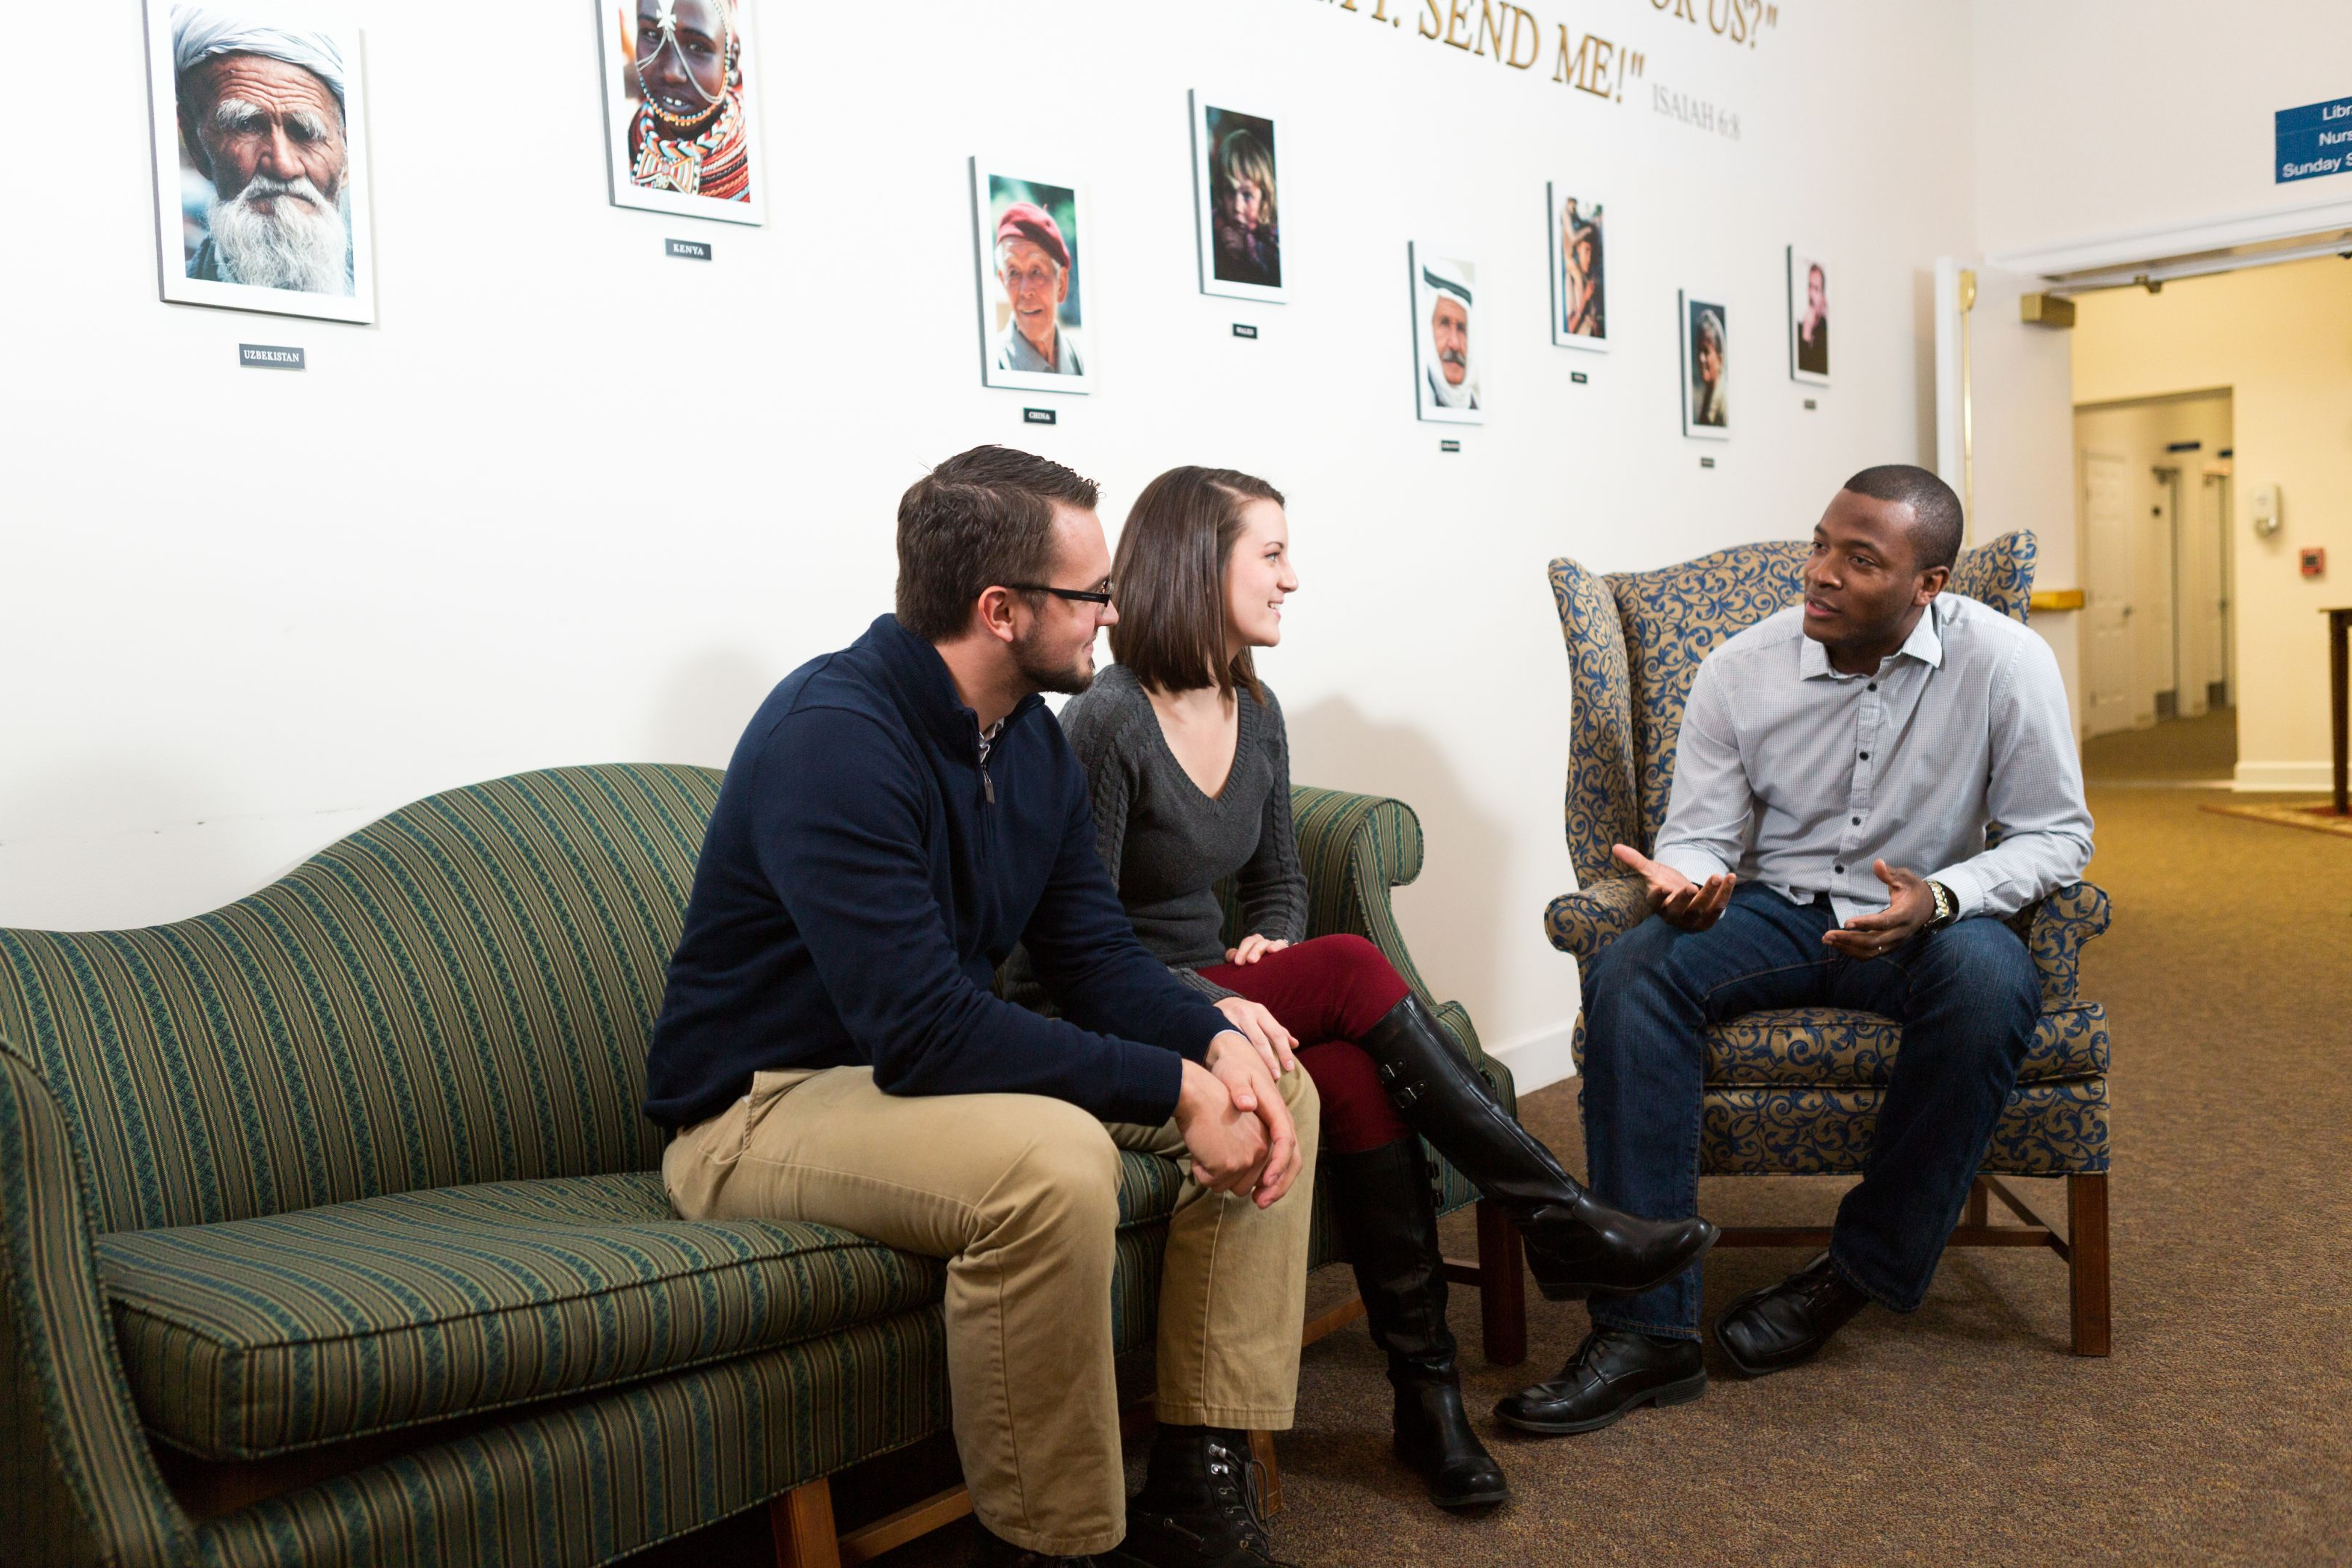 Doctor Of Education EdD In Community Care And Counseling Pastoral Care And Counseling